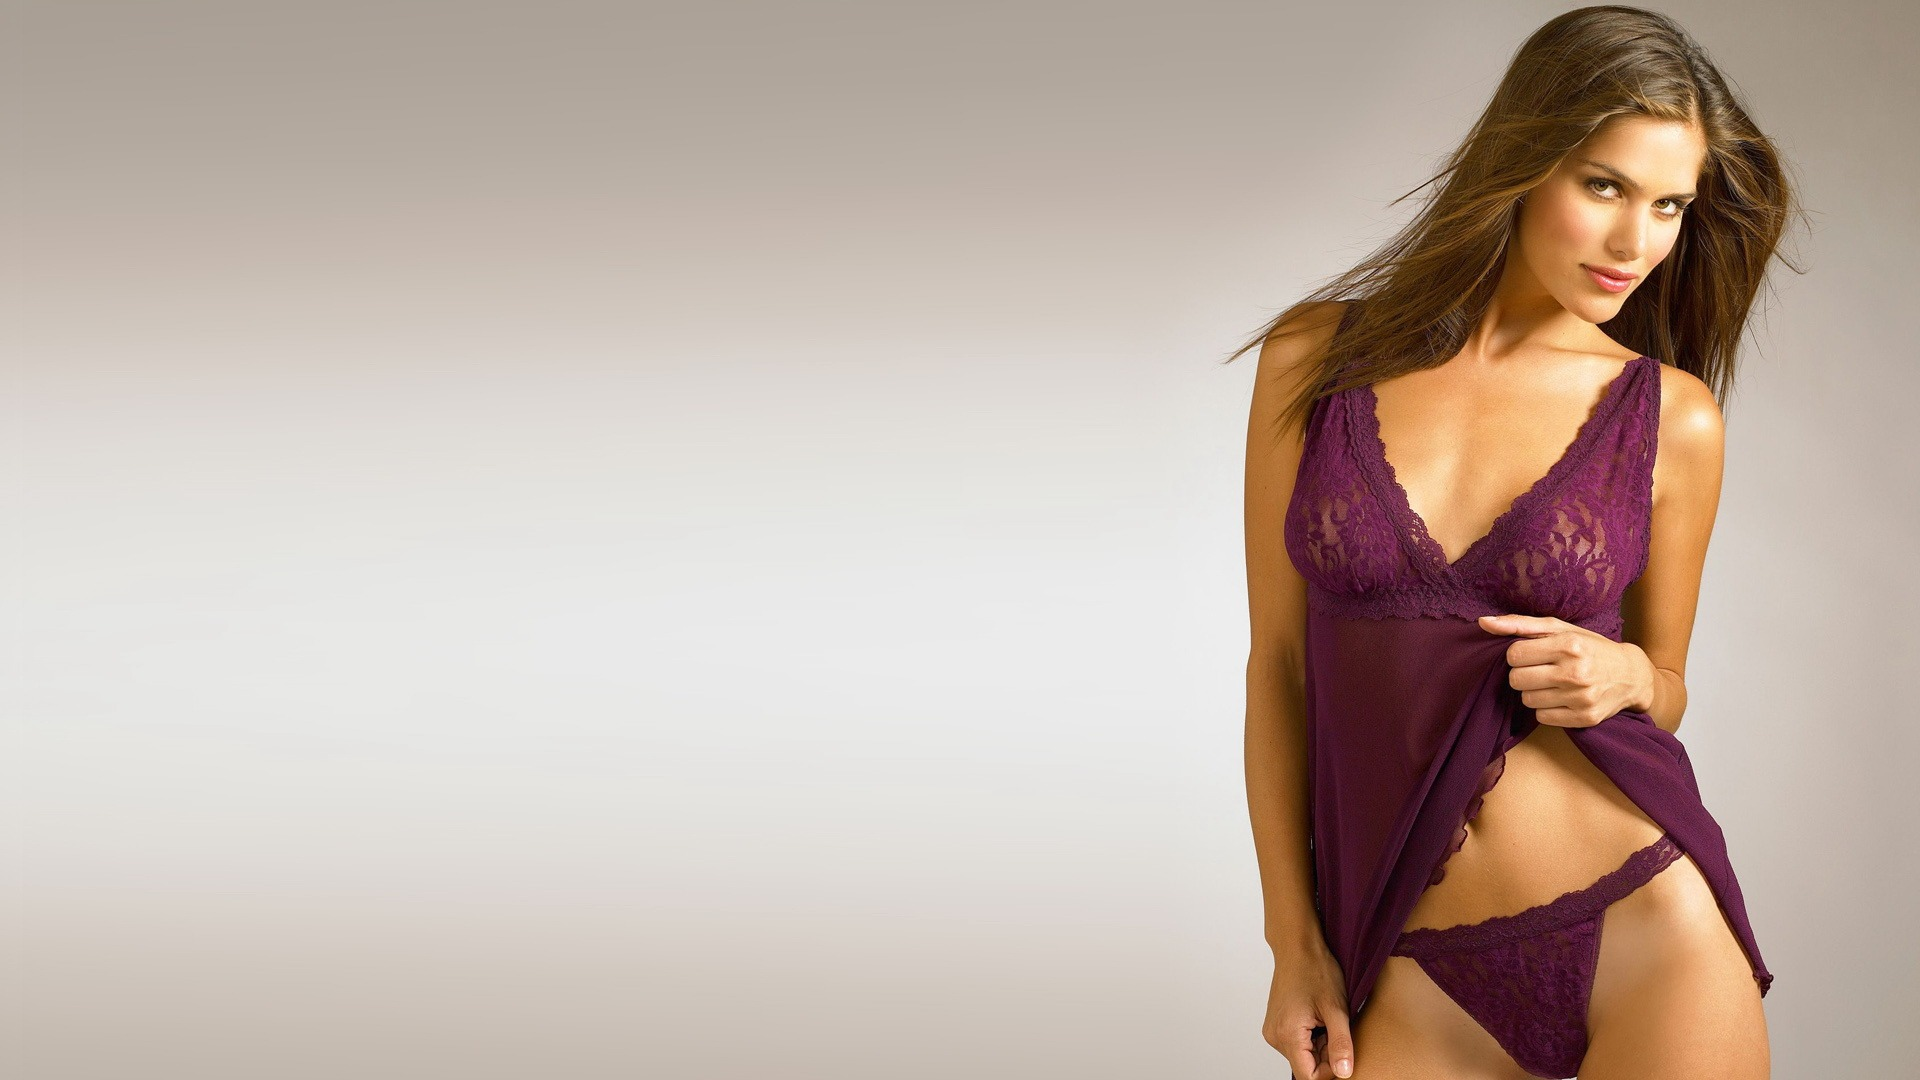 Anahi Gonzales #035 - 1920x1080 Wallpapers Pictures Photos Images